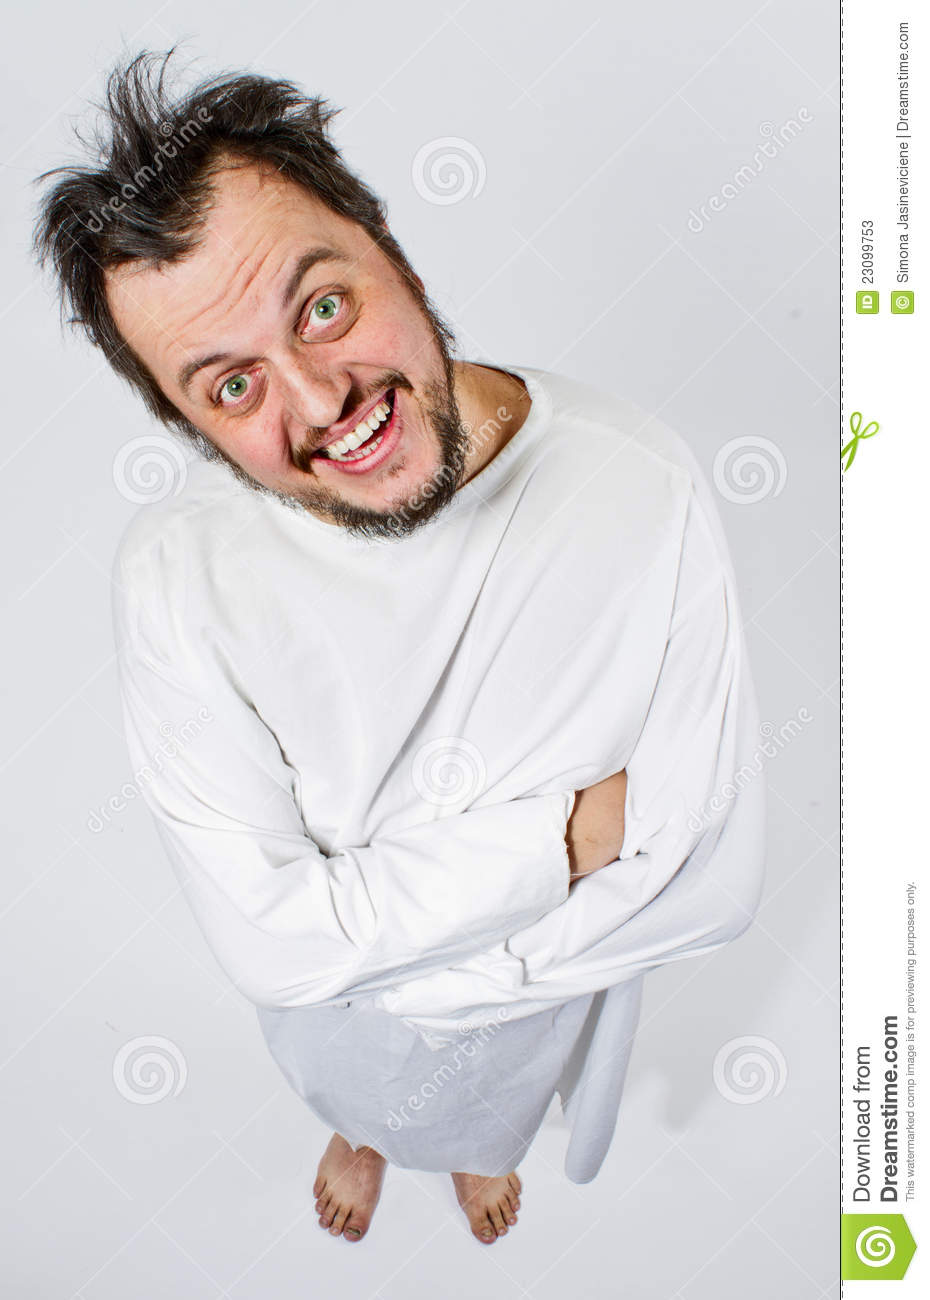 Insane Man In Strait-jacket Stock Photos - Image: 23099753